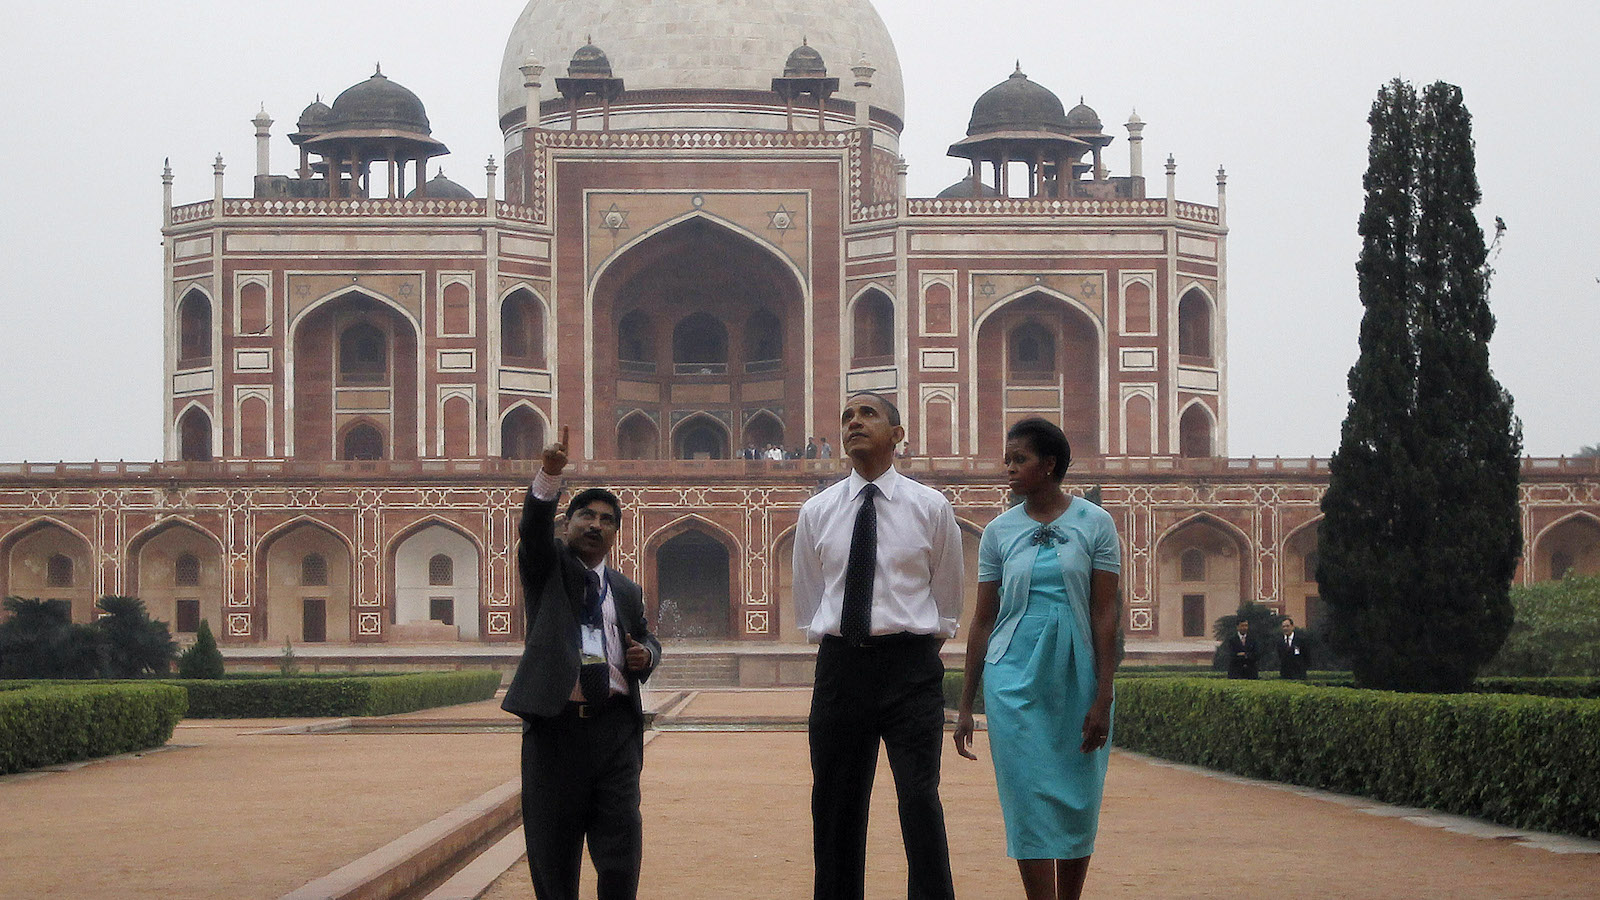 U.S. President Barack Obama and first lady Michelle Obama tour Humayun's tomb with their guide K.K. Muhammed in New Delhi November 7, 2010.